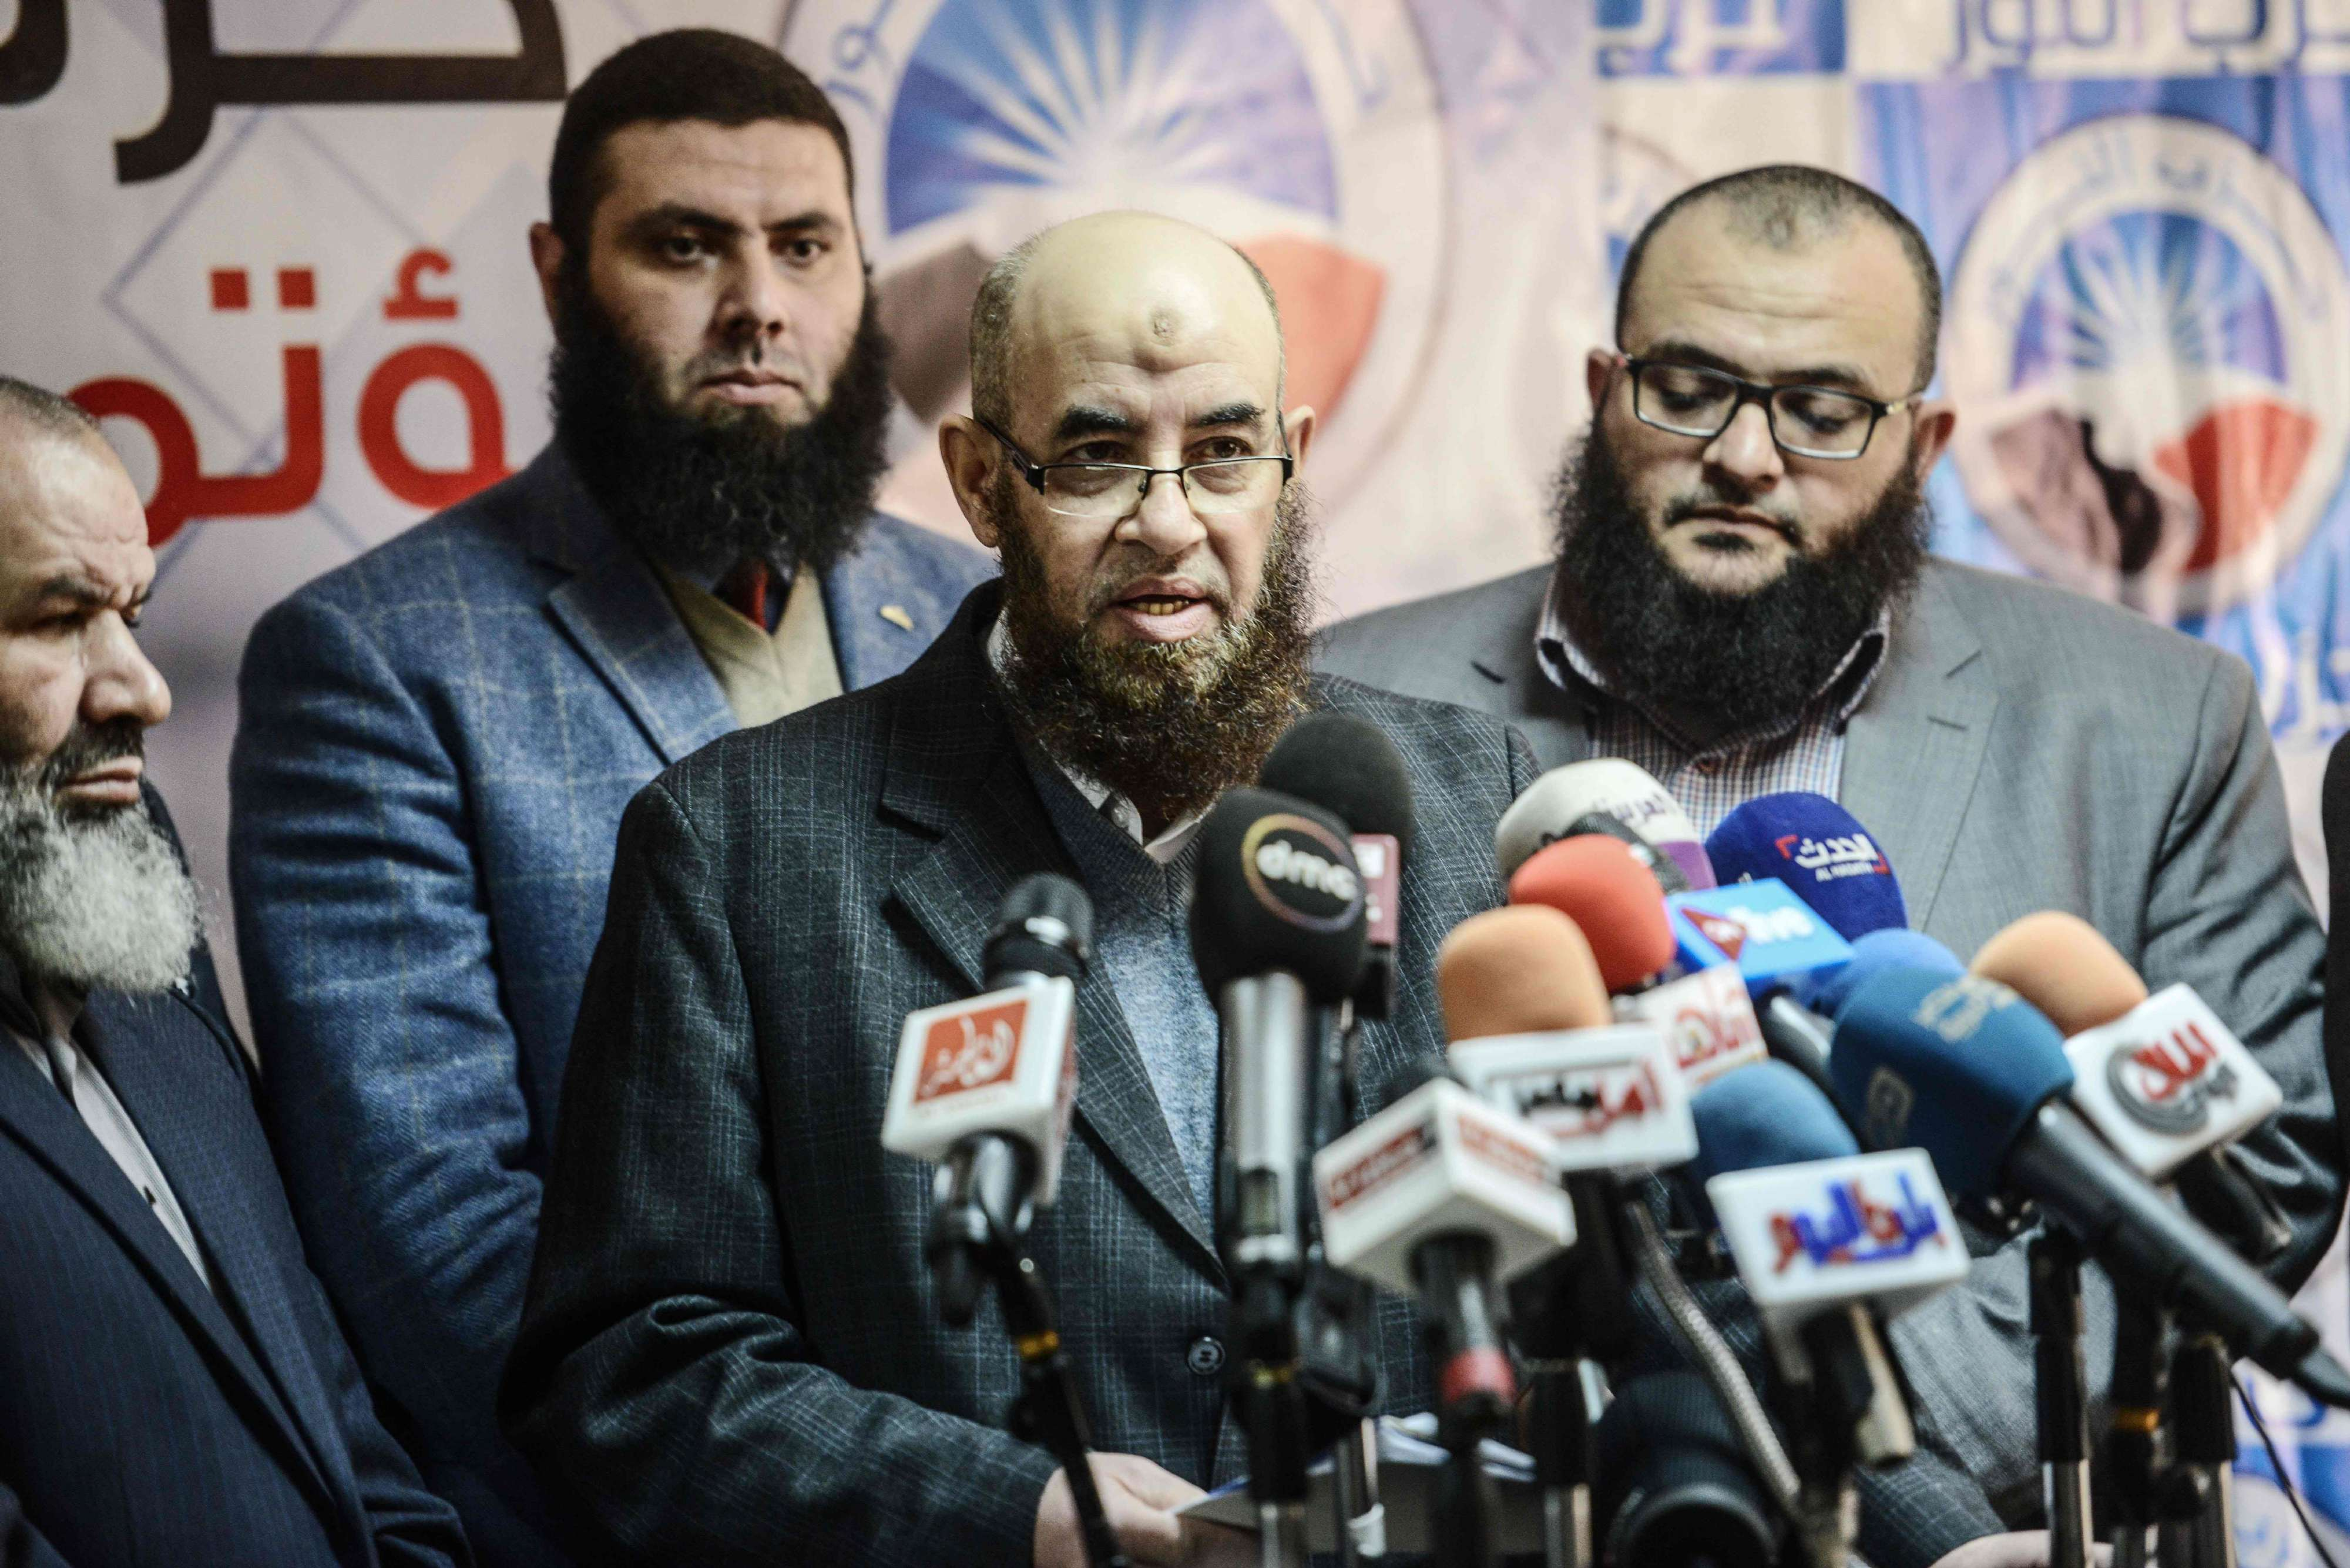 Younes Makhyoun, the head of the Salafist Al-Nour Party, speaks during a press conference in Cairo, on January 28. (AFP)